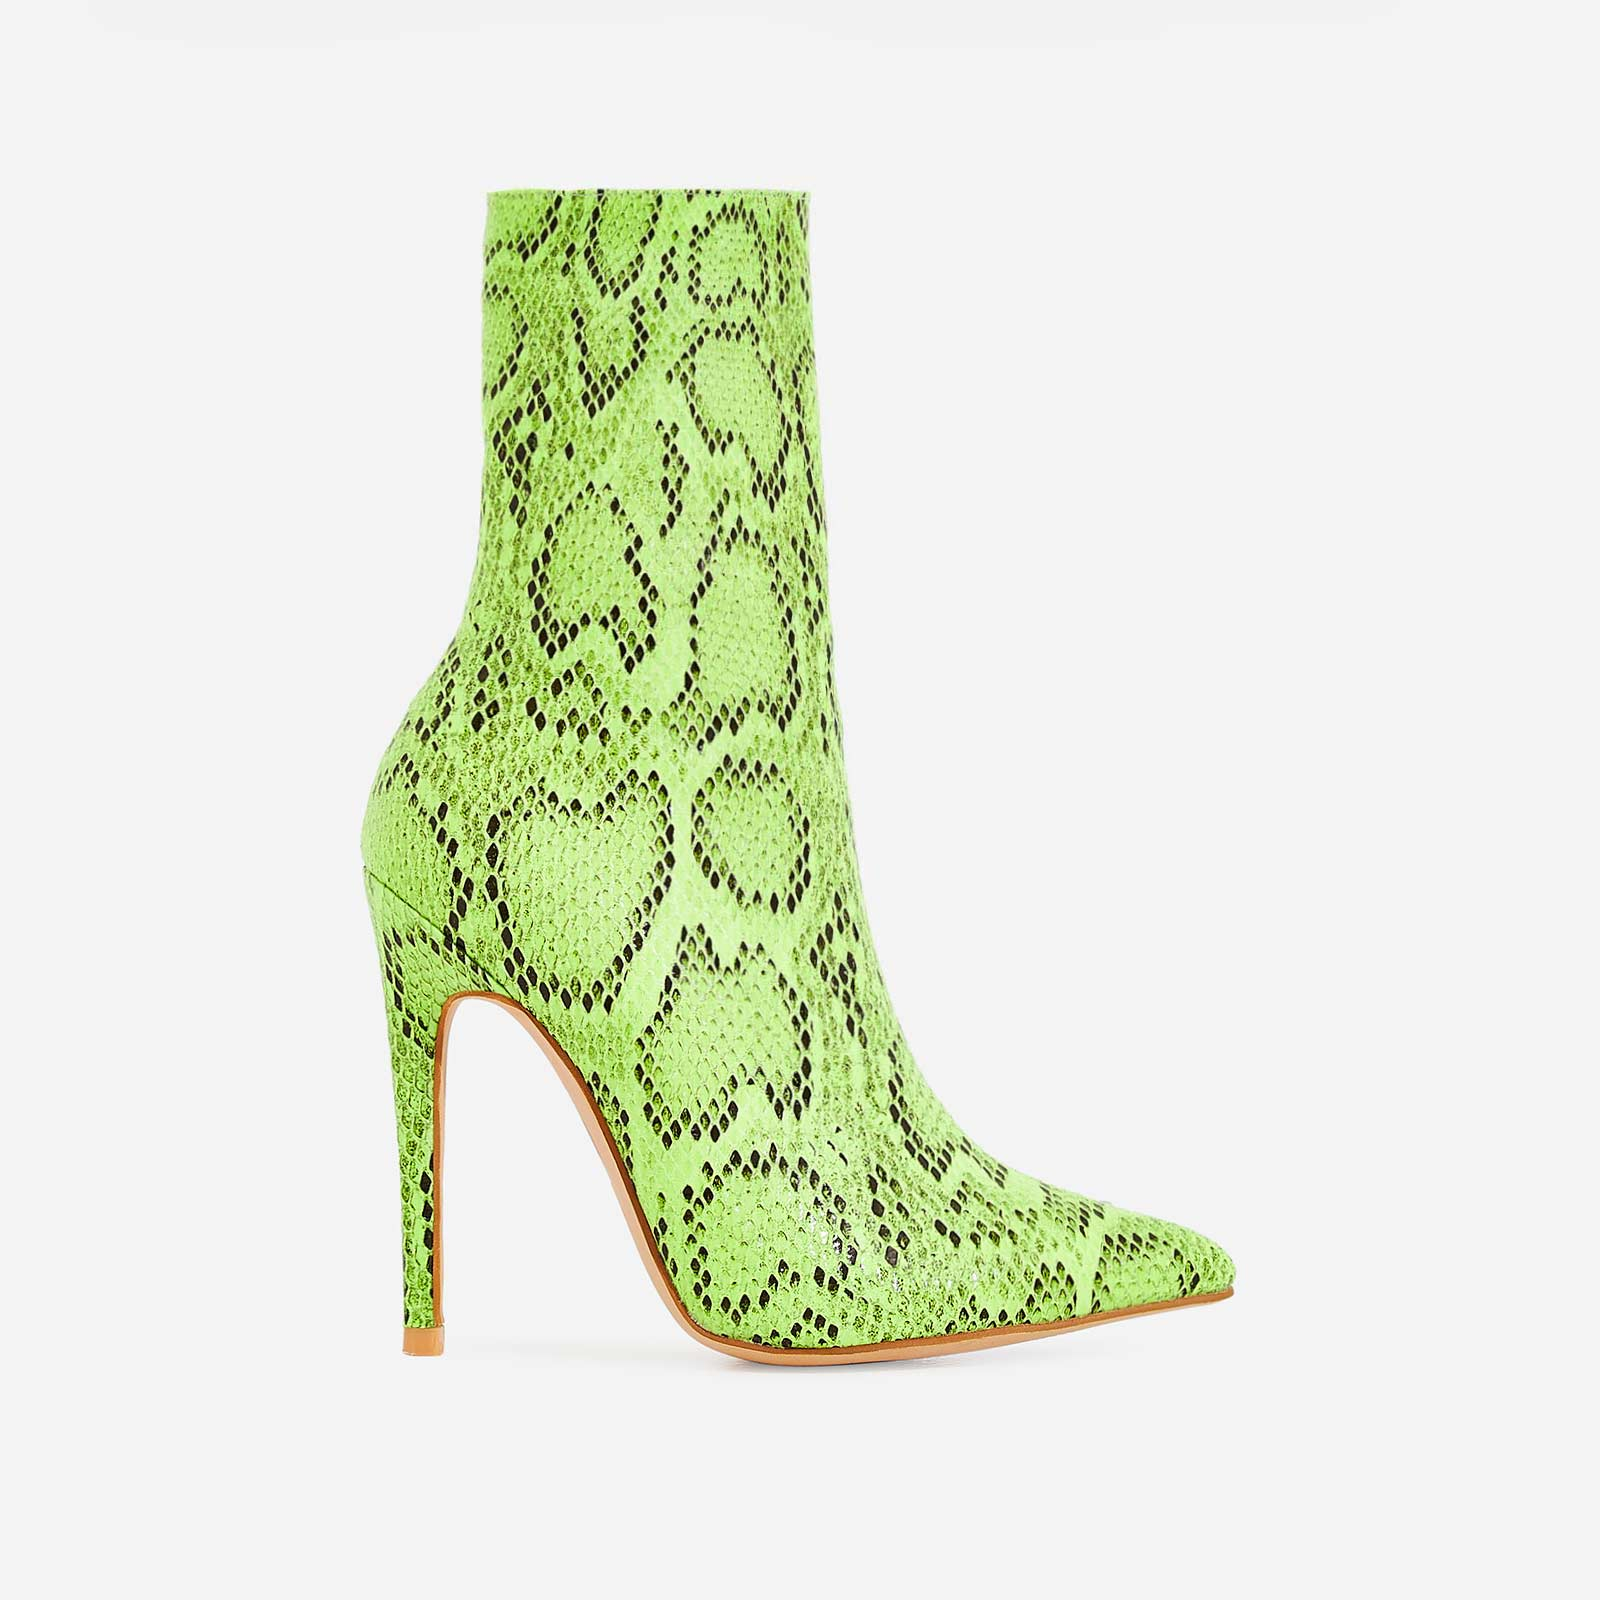 Boa Ankle Sock Boot In Neon Green Snake Print Faux Leather f91904d43